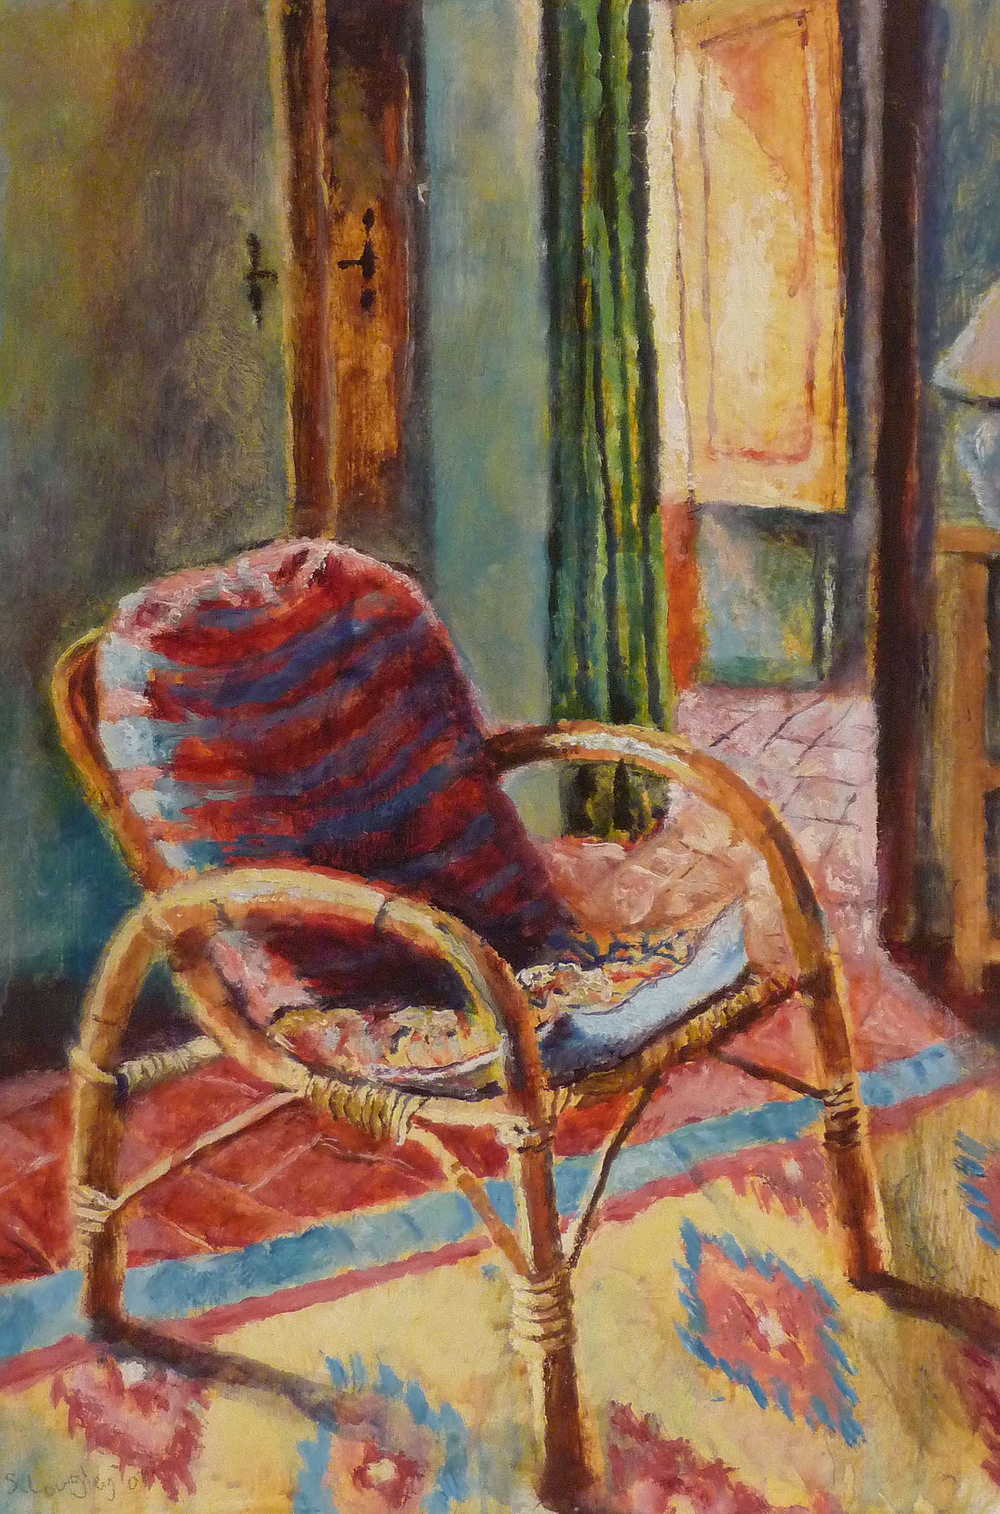 Sarah Longley_-_Ron's Chair_oil on board_45 x 31cm.jpg